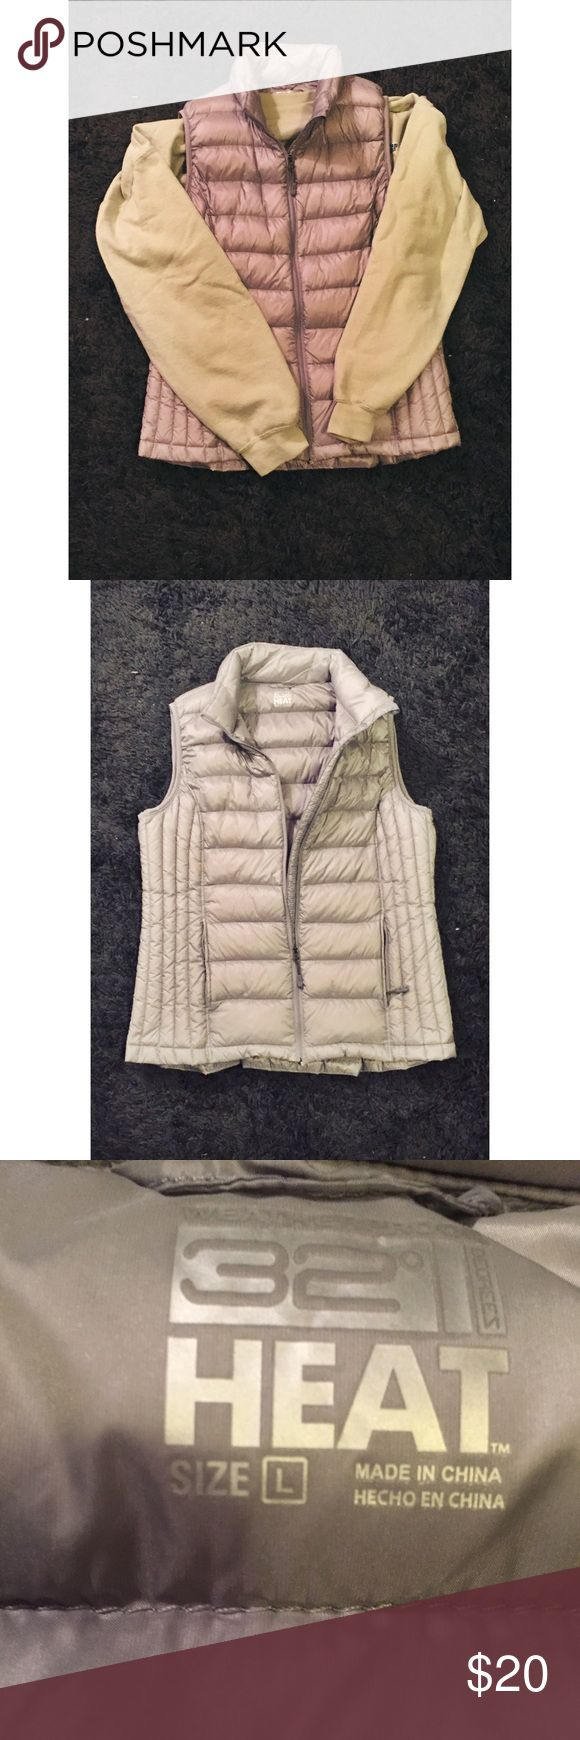 Gray/Silver Vest 32 degree HEAT vest size Large. NWOT. In perfect condition Jackets & Coats Vests